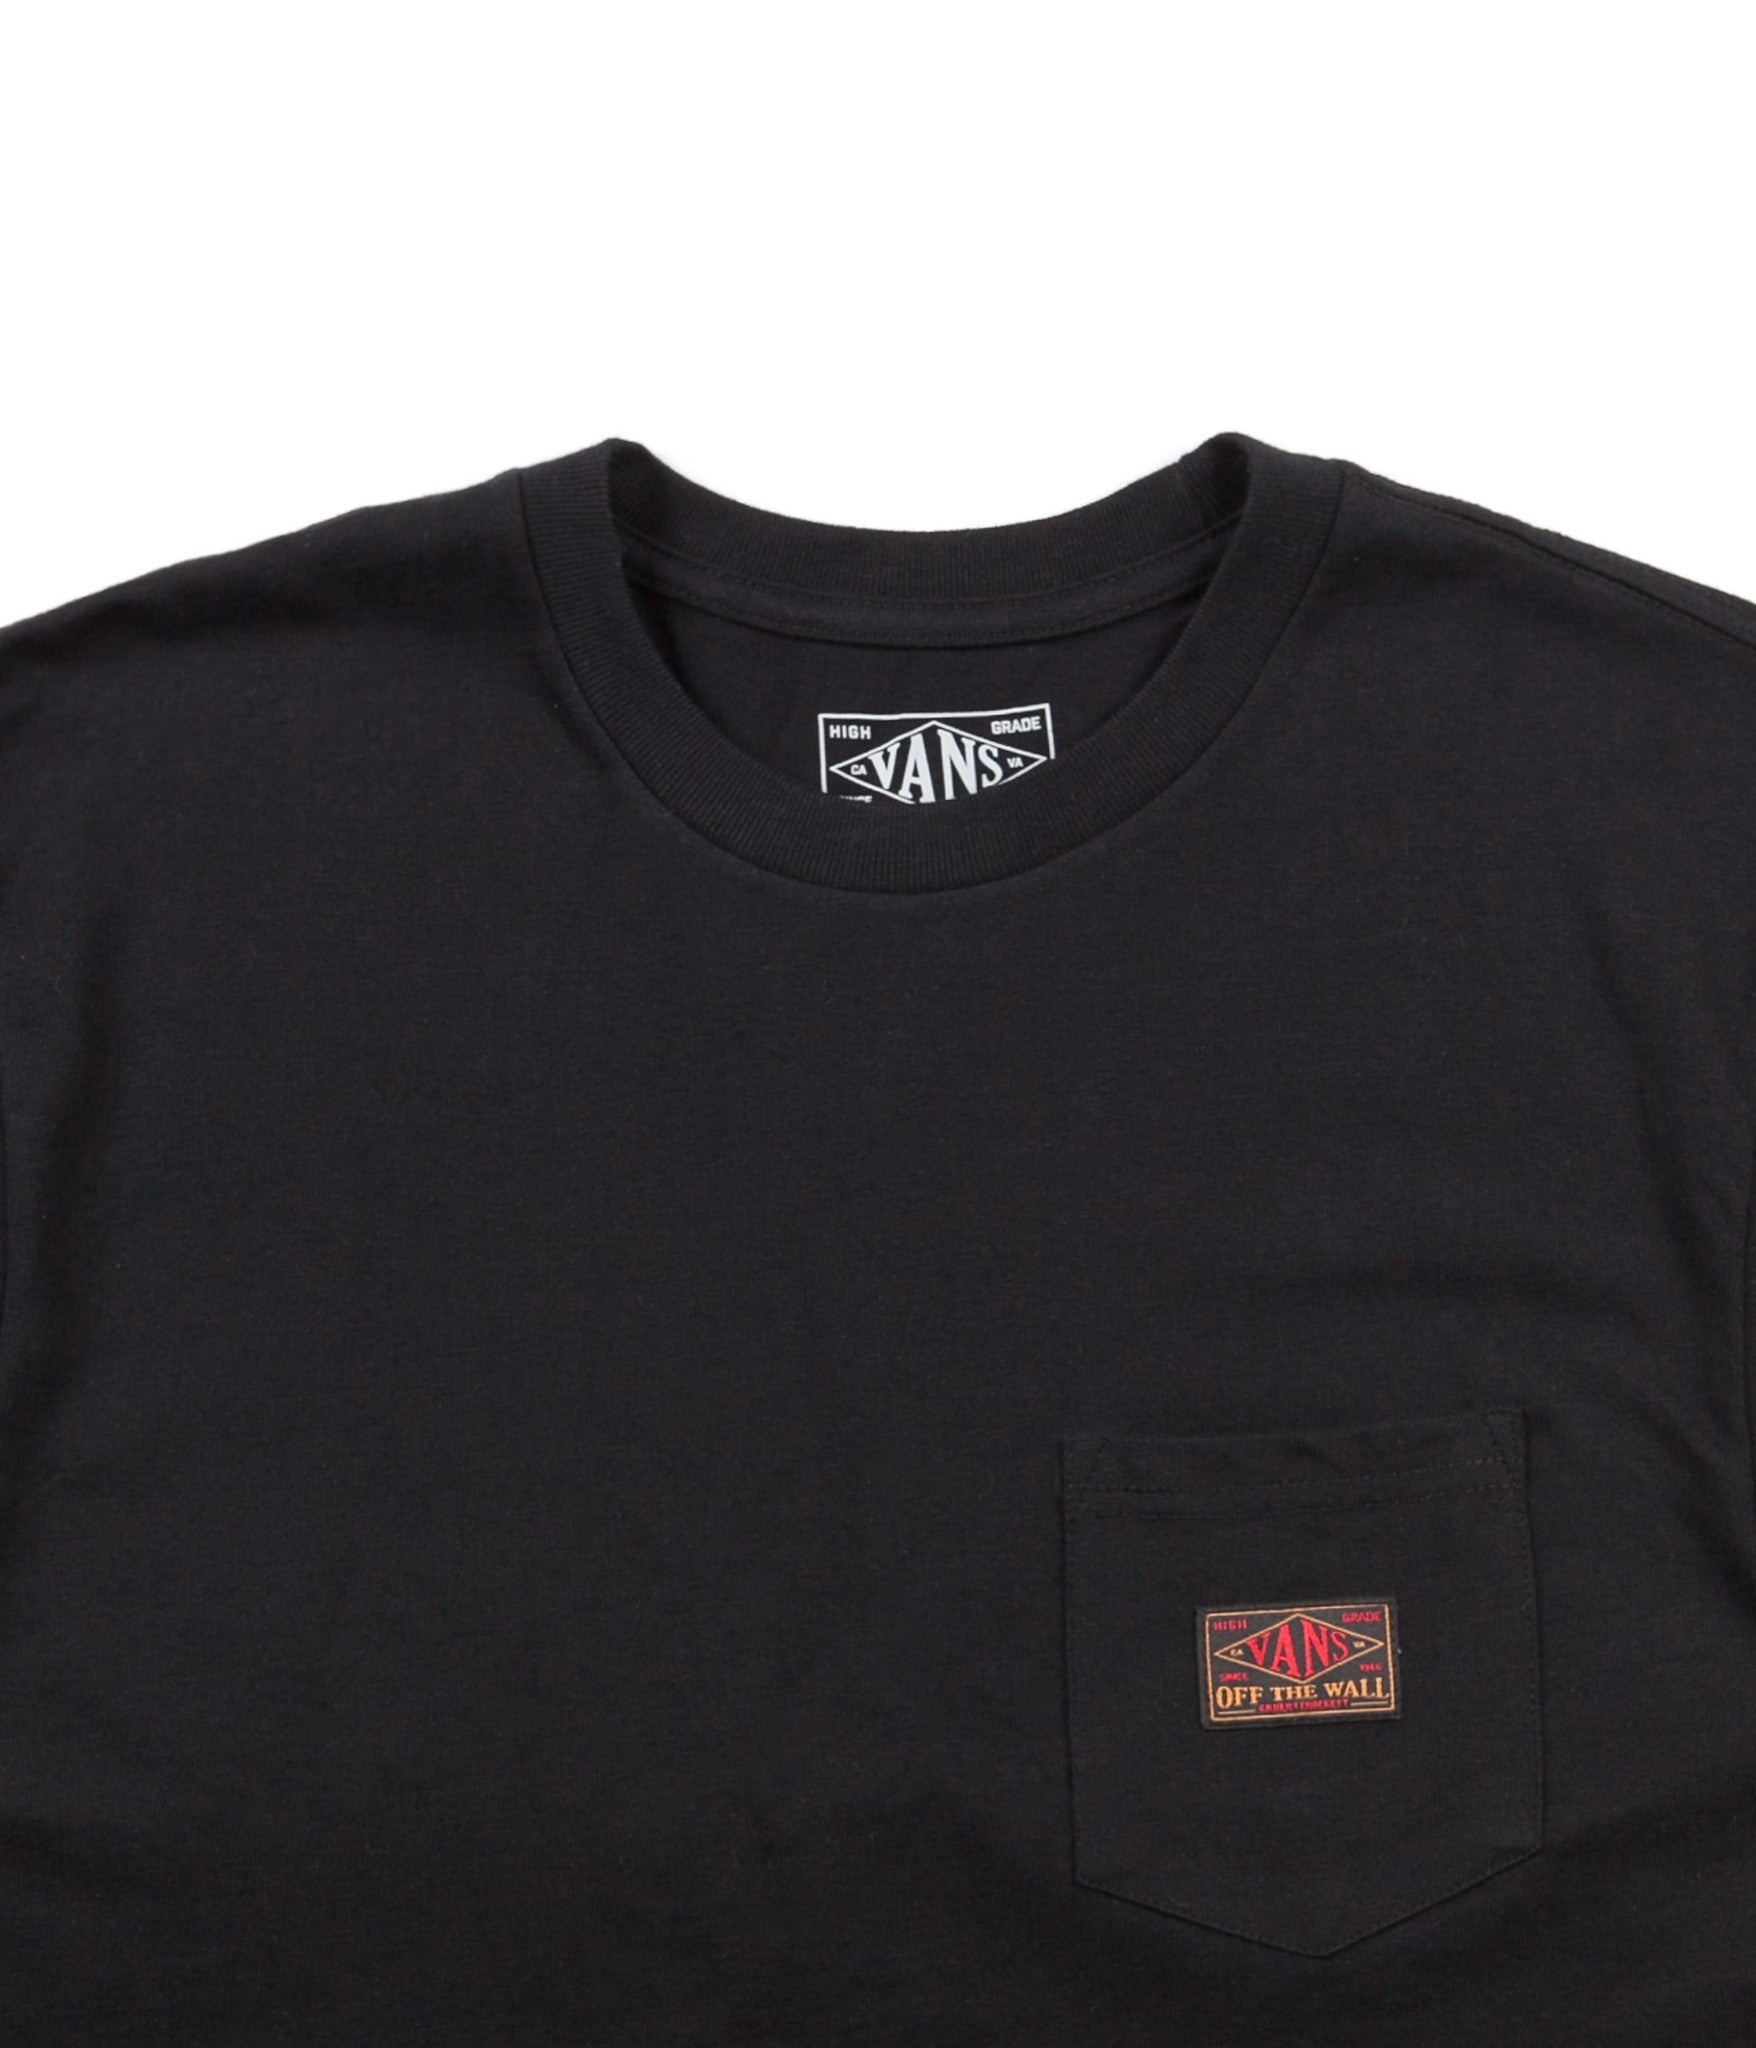 Vans Gilbert Crockett Pocket T-Shirt - Black